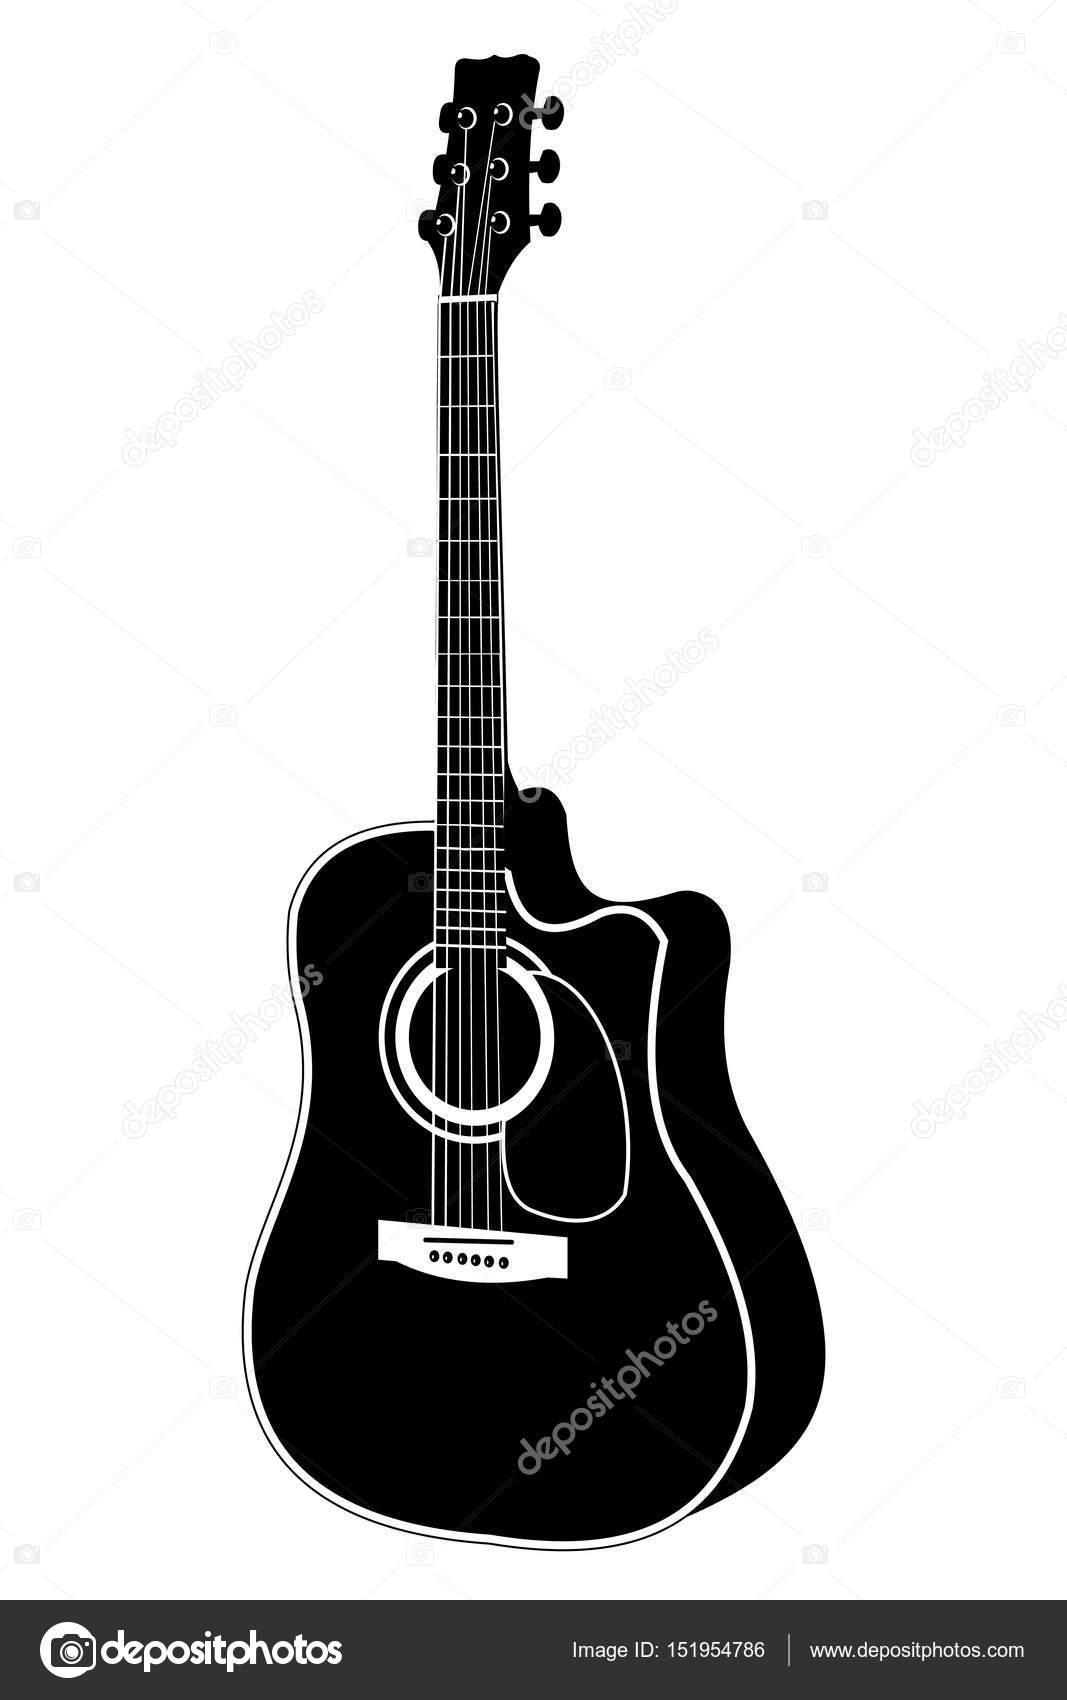 acoustic guitar vector illustration stock vector darafeja 151954786 rh depositphotos com acoustic guitar vector outline acoustic guitar silhouette vector free